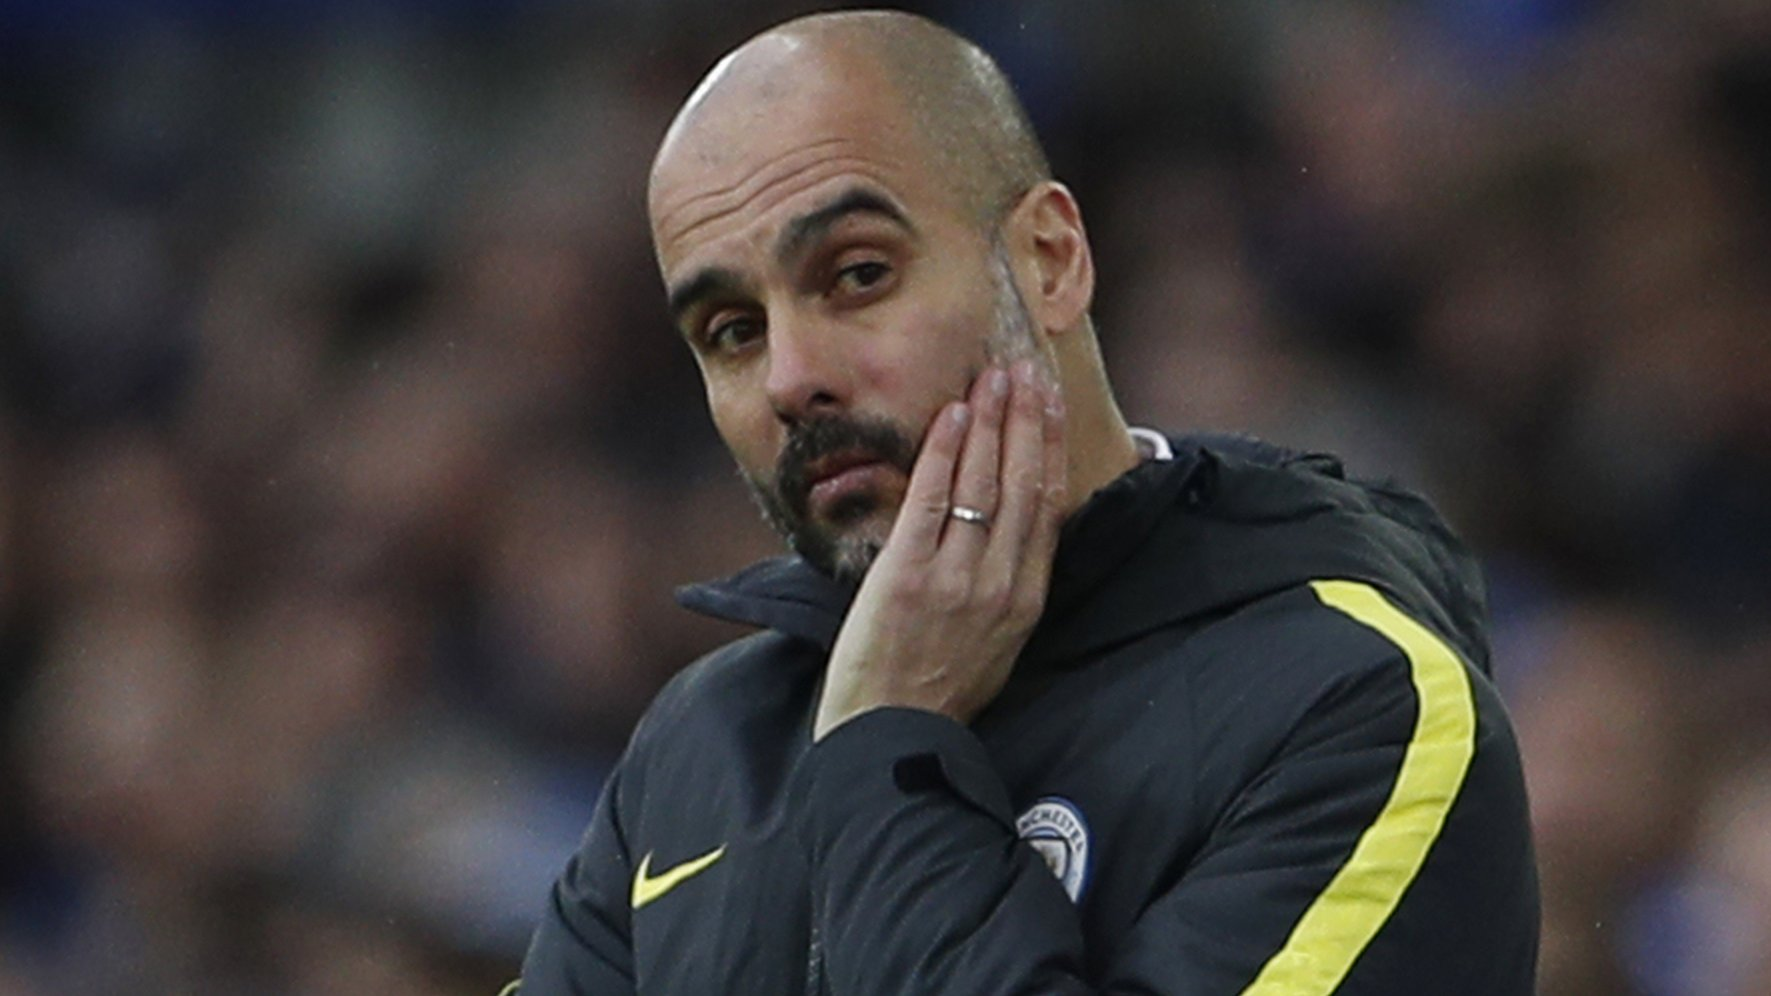 Manchester City: Pep Guardiola says 'I might not be good enough'